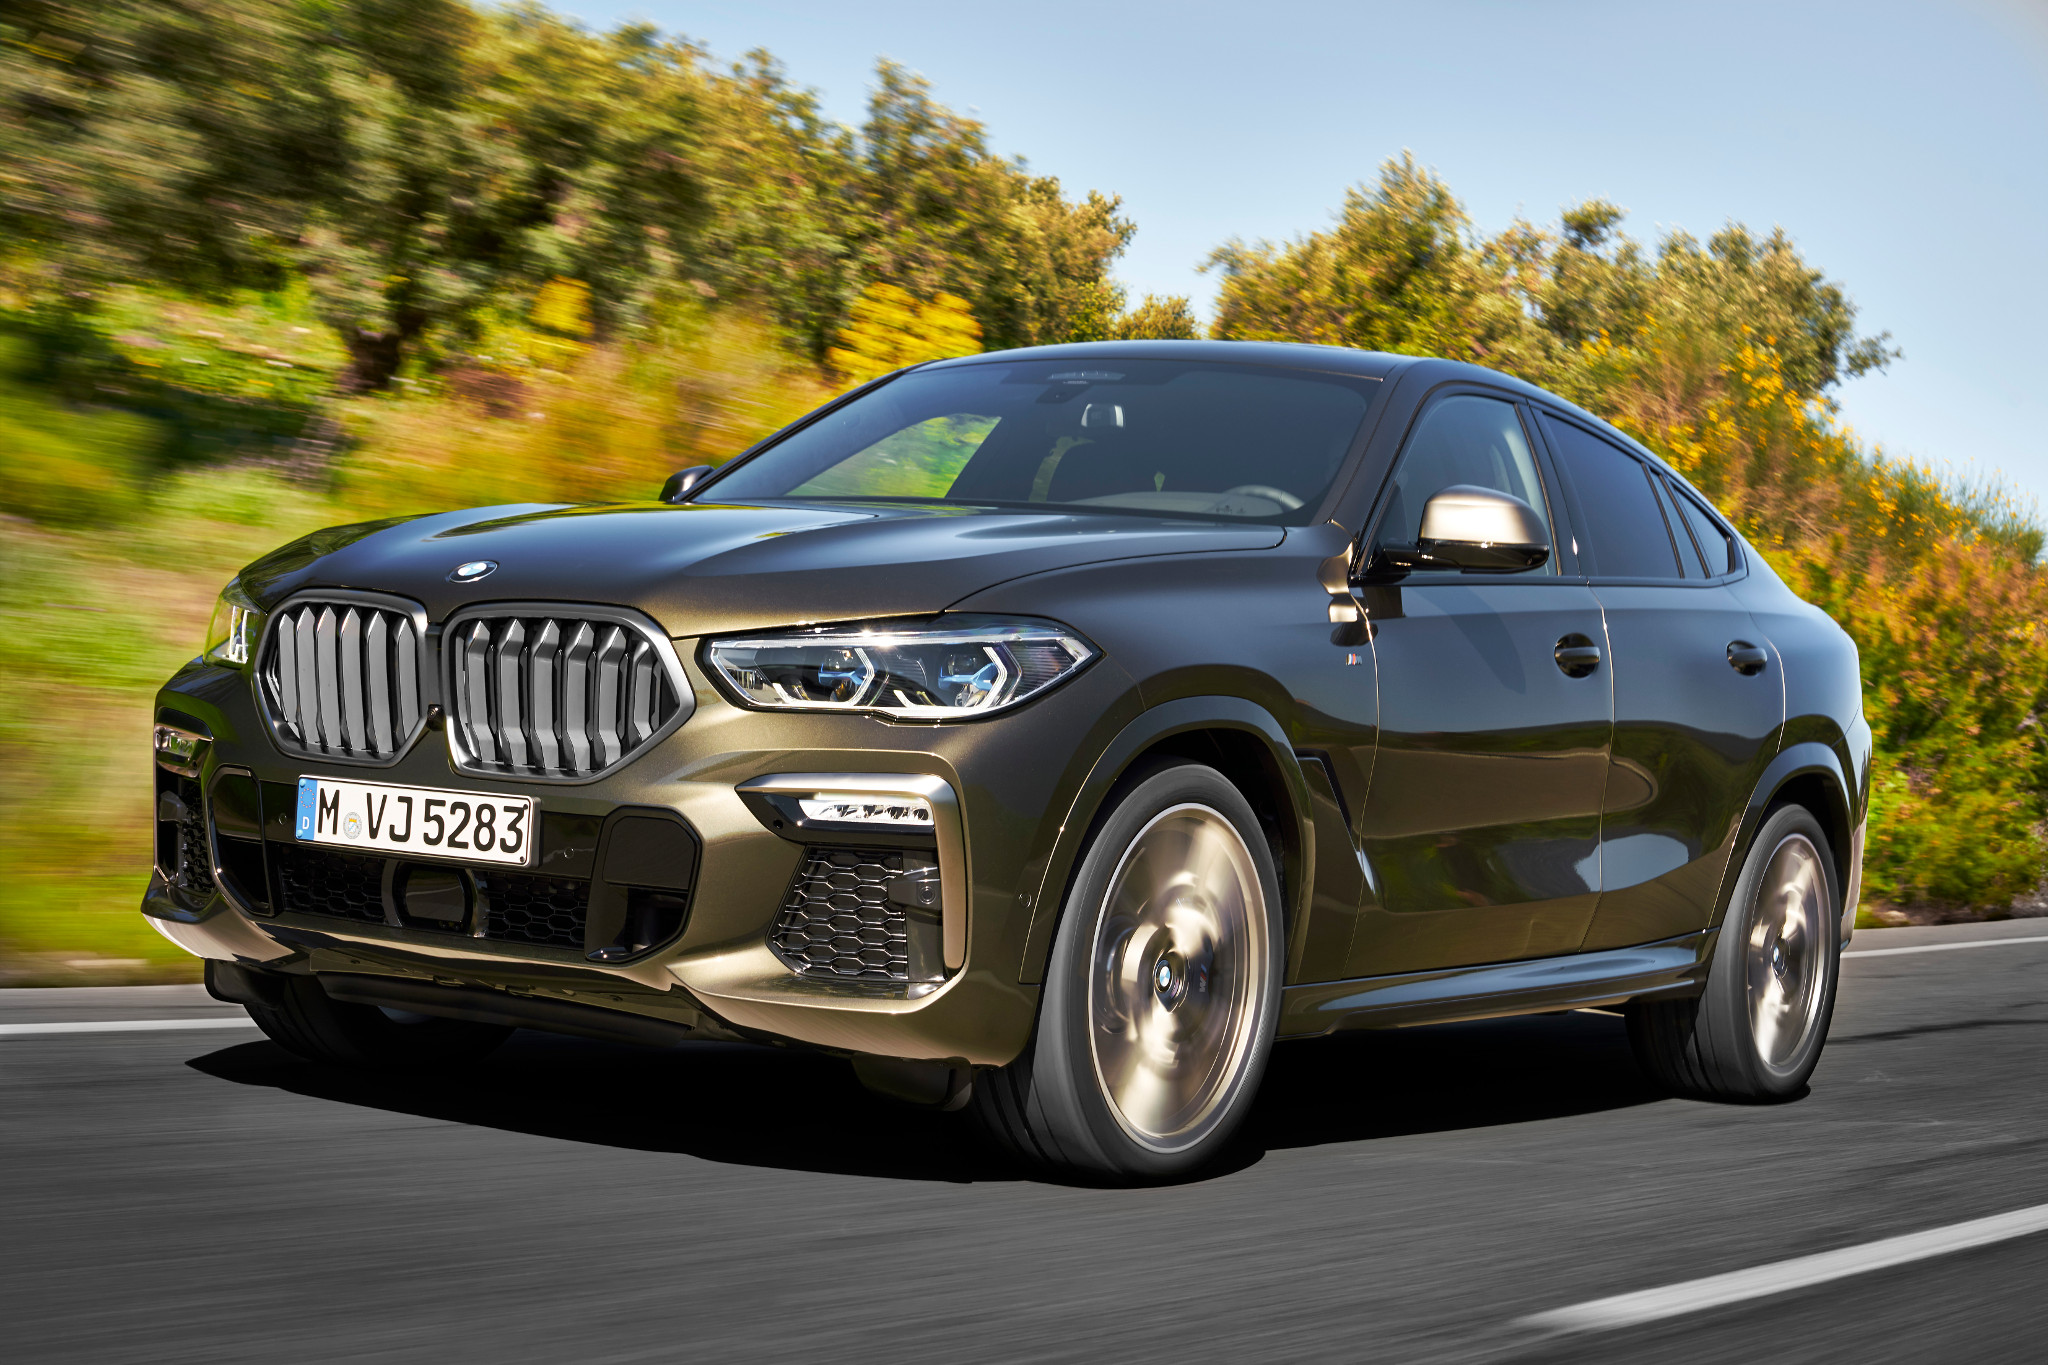 bmw-x6-2020-02-angle--dynamic--exterior--front--gold.jpg